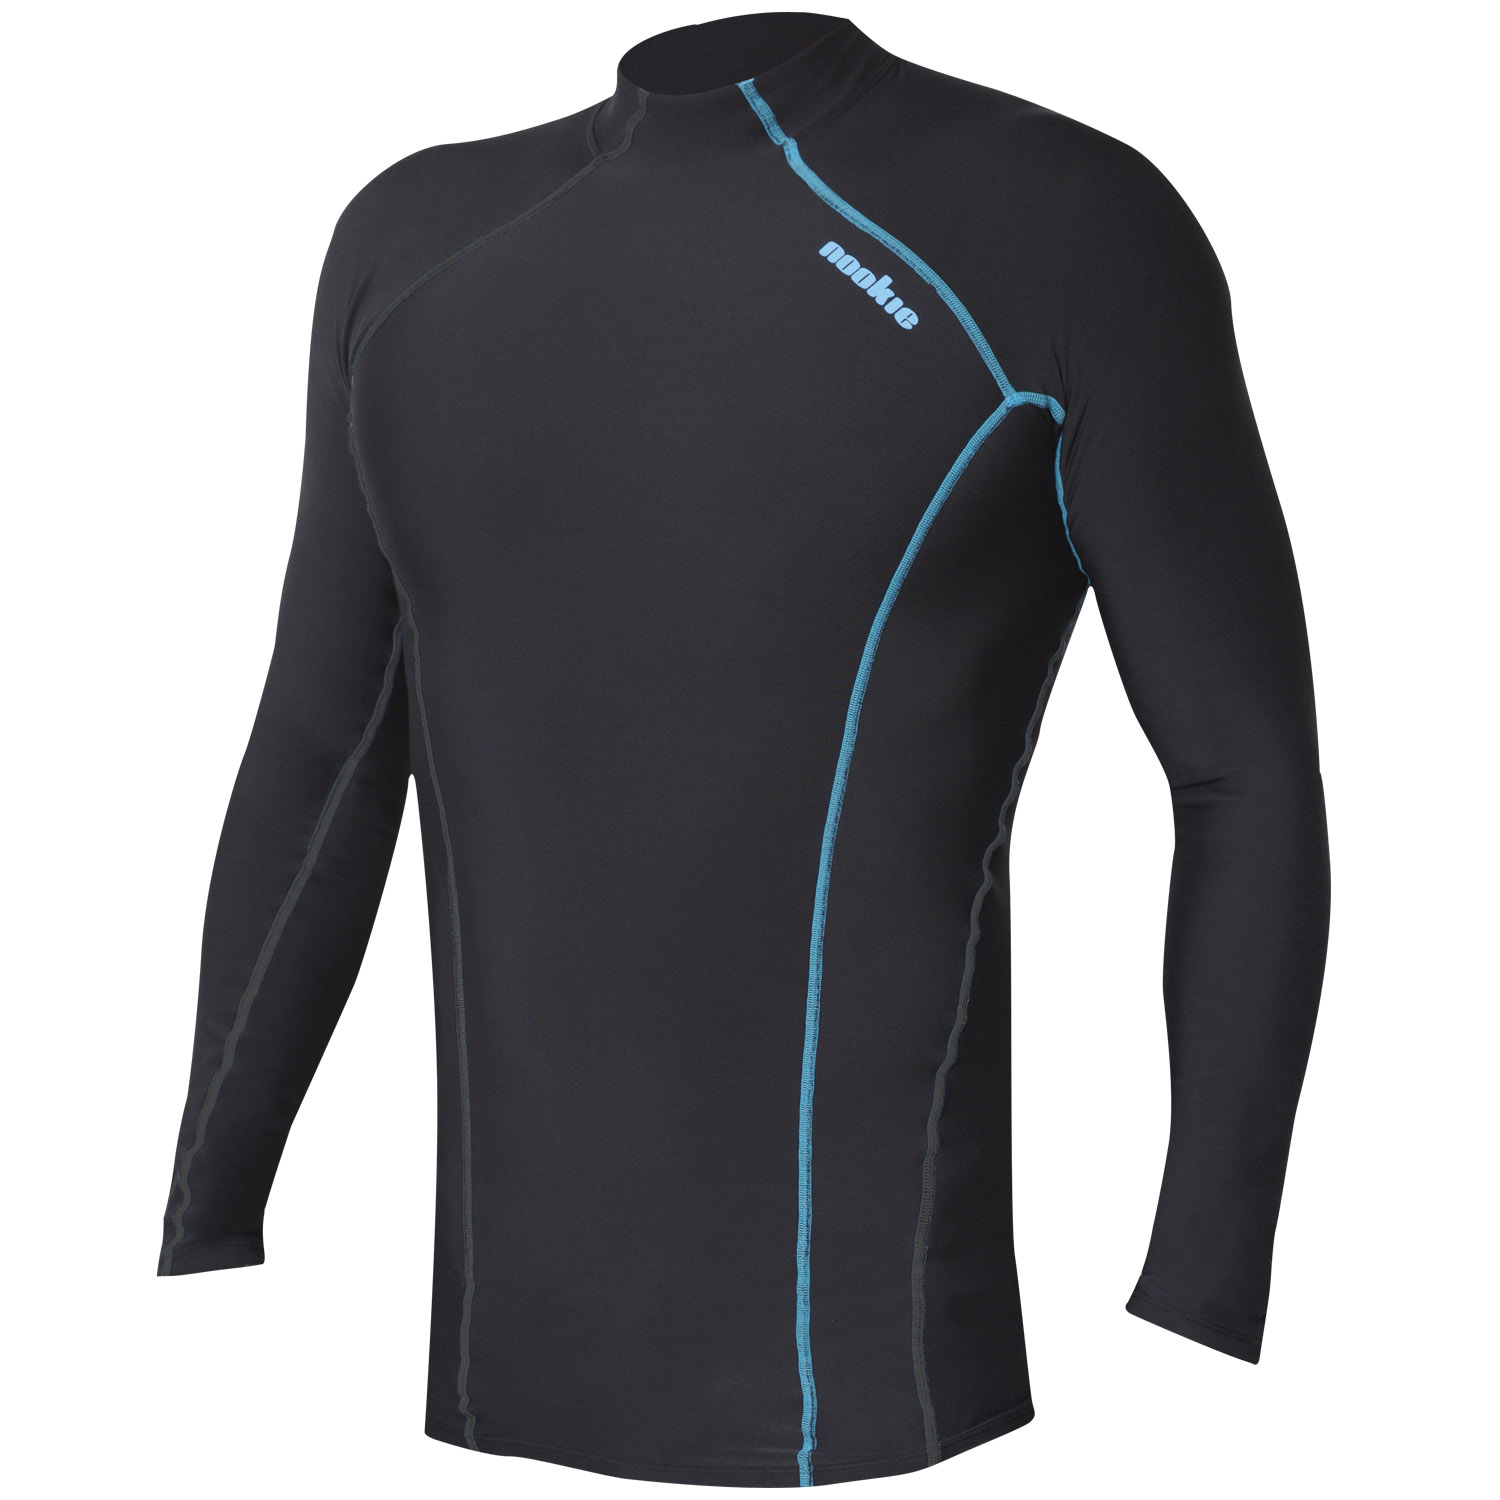 Nookie Softcore Thermal Base Layer Long Sleeve